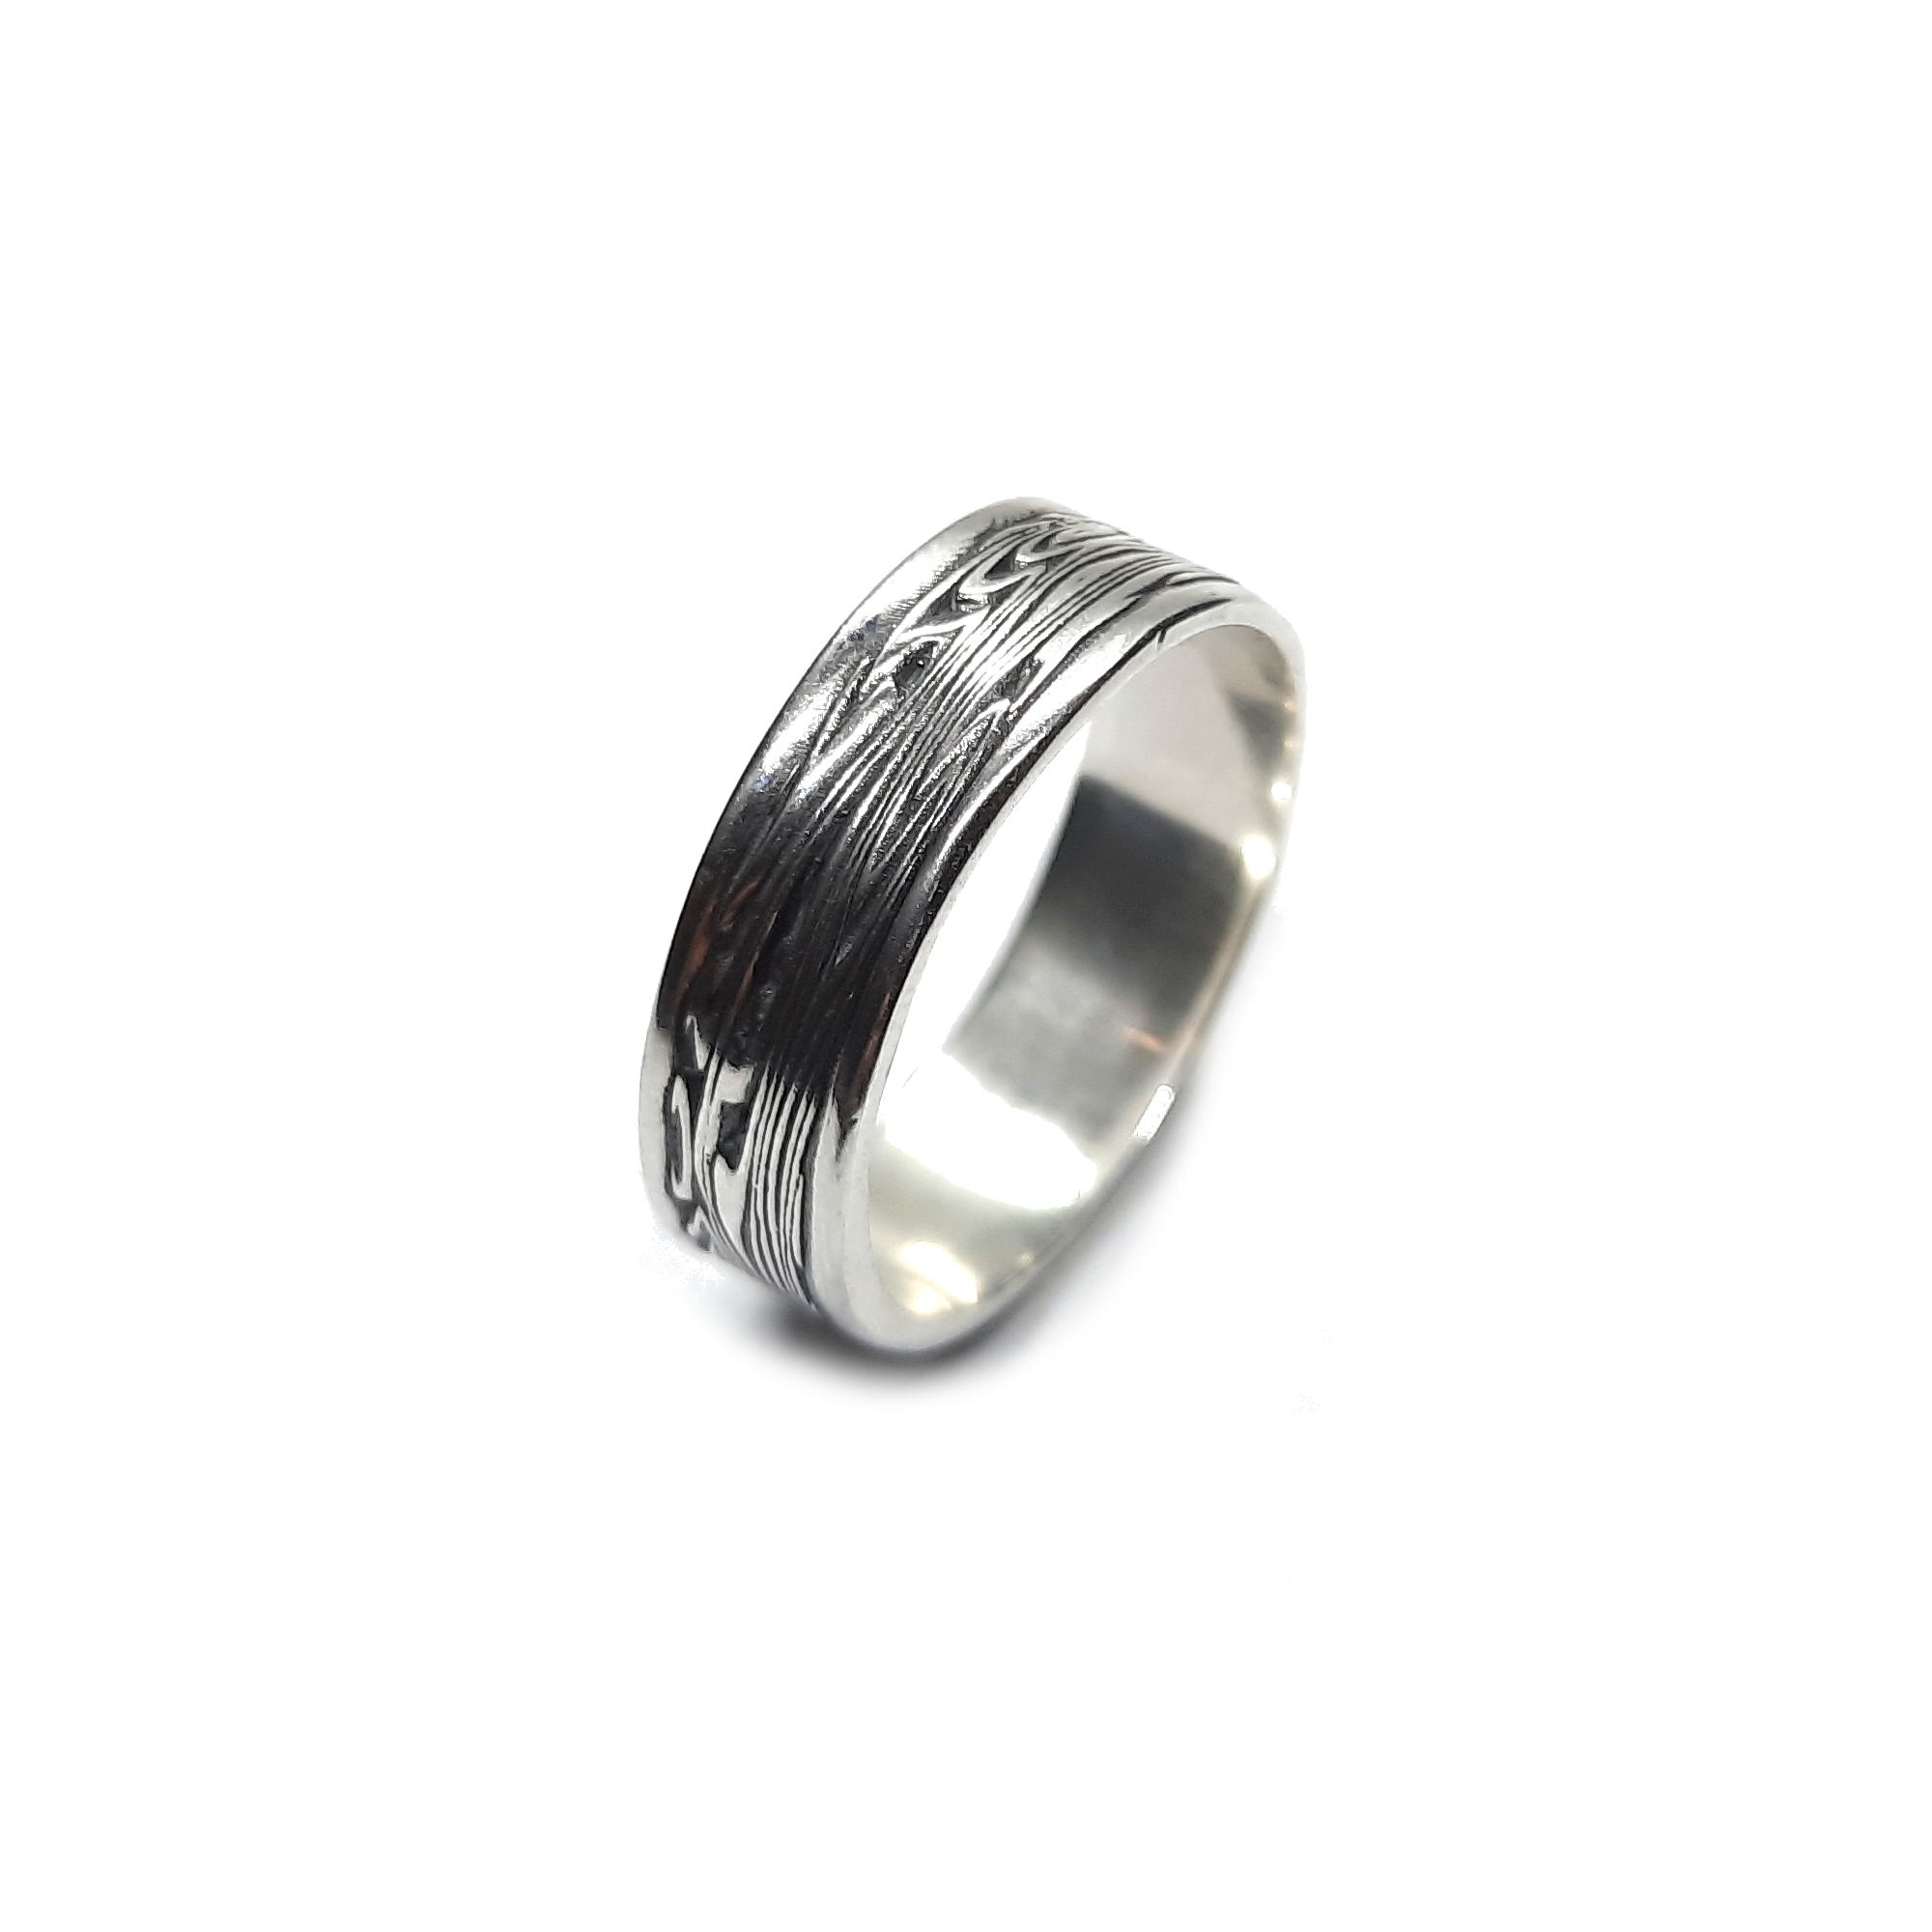 Silver ring - R002221